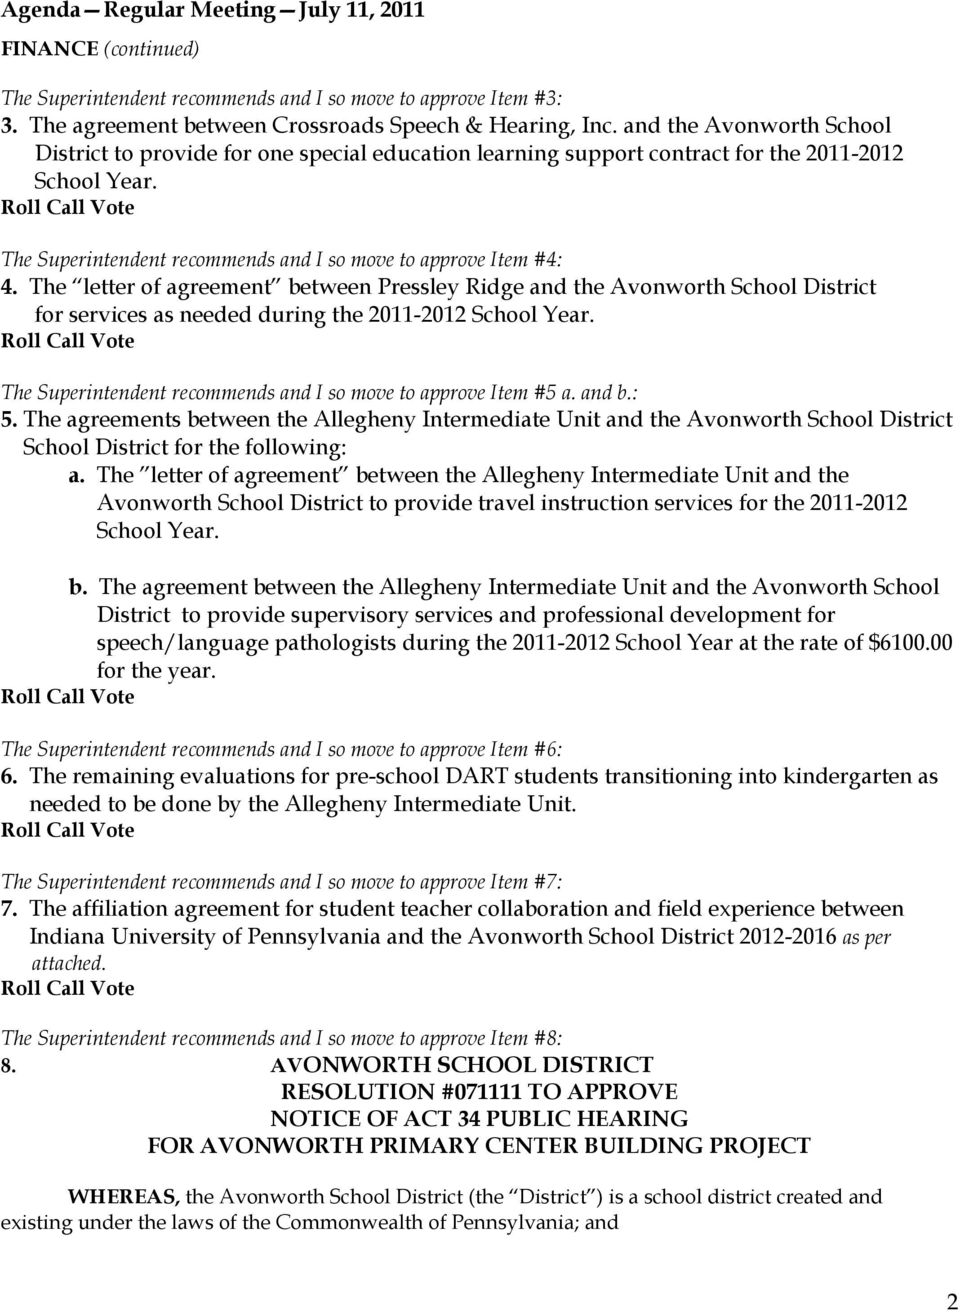 The letter of agreement between Pressley Ridge and the Avonworth School District for services as needed during the 2011-2012 School Year.